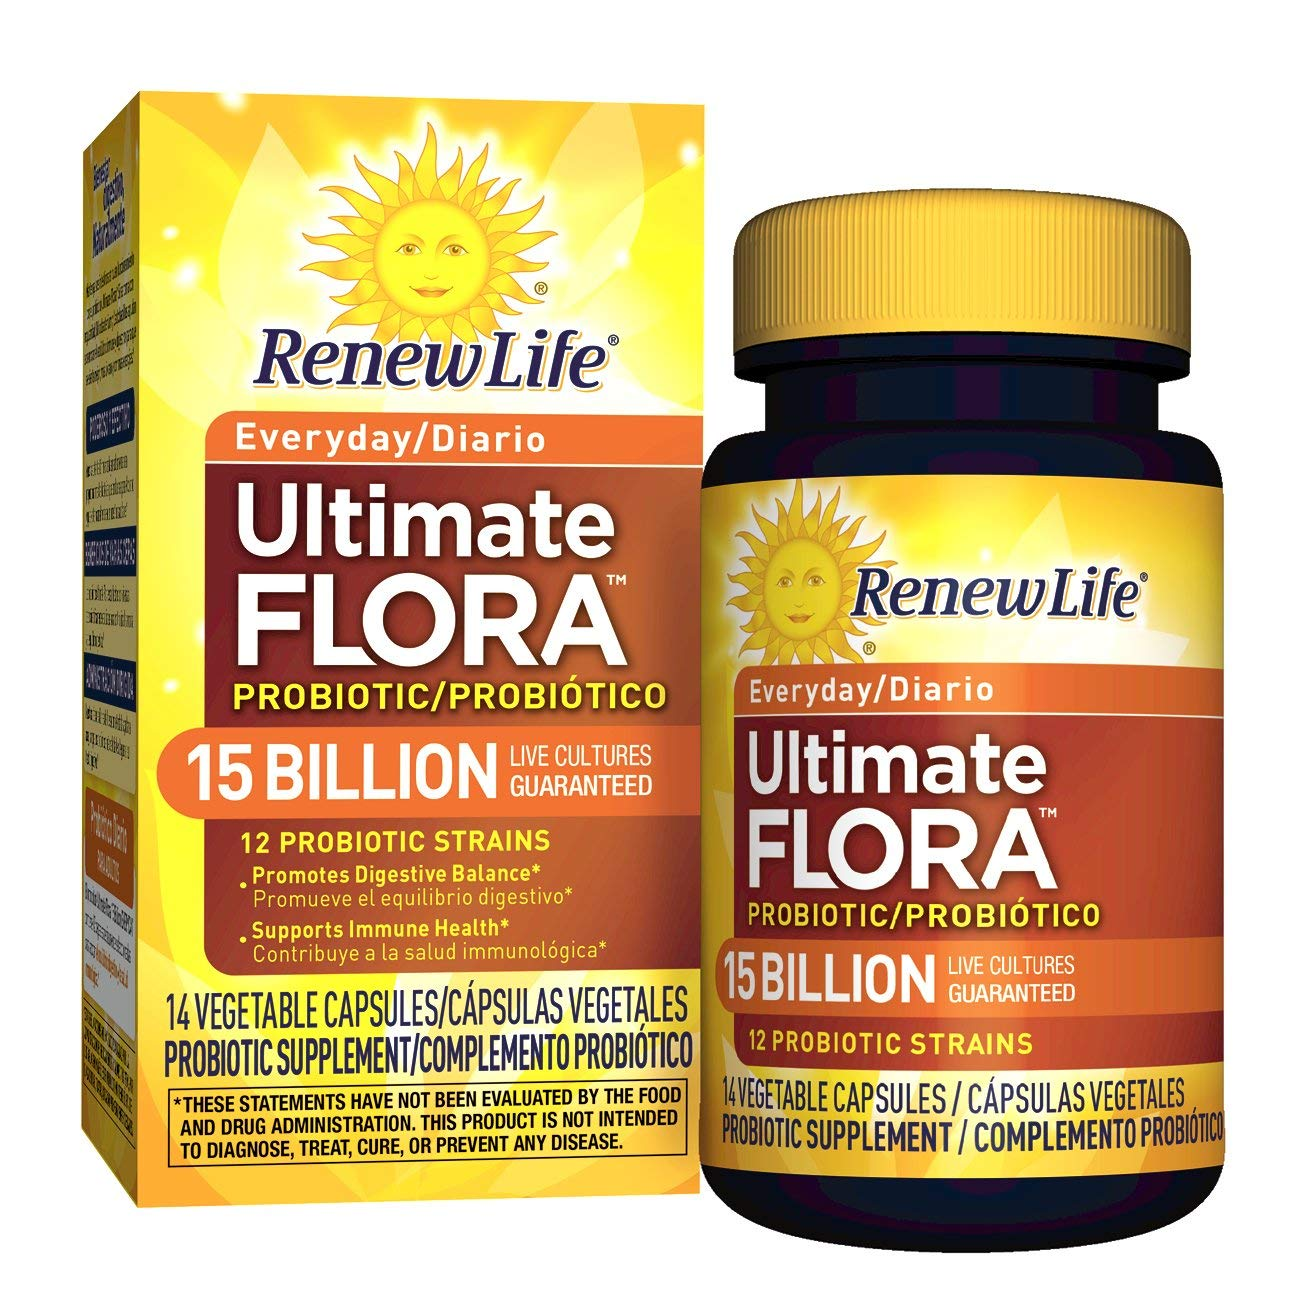 Amazon.com: Renew Life Adult Probiotic - Ultimate Flora Everyday Probiotic, Shelf Stable Probiotic Supplement - 15 Billion - 14 Vegetable Capsules: Prime ...